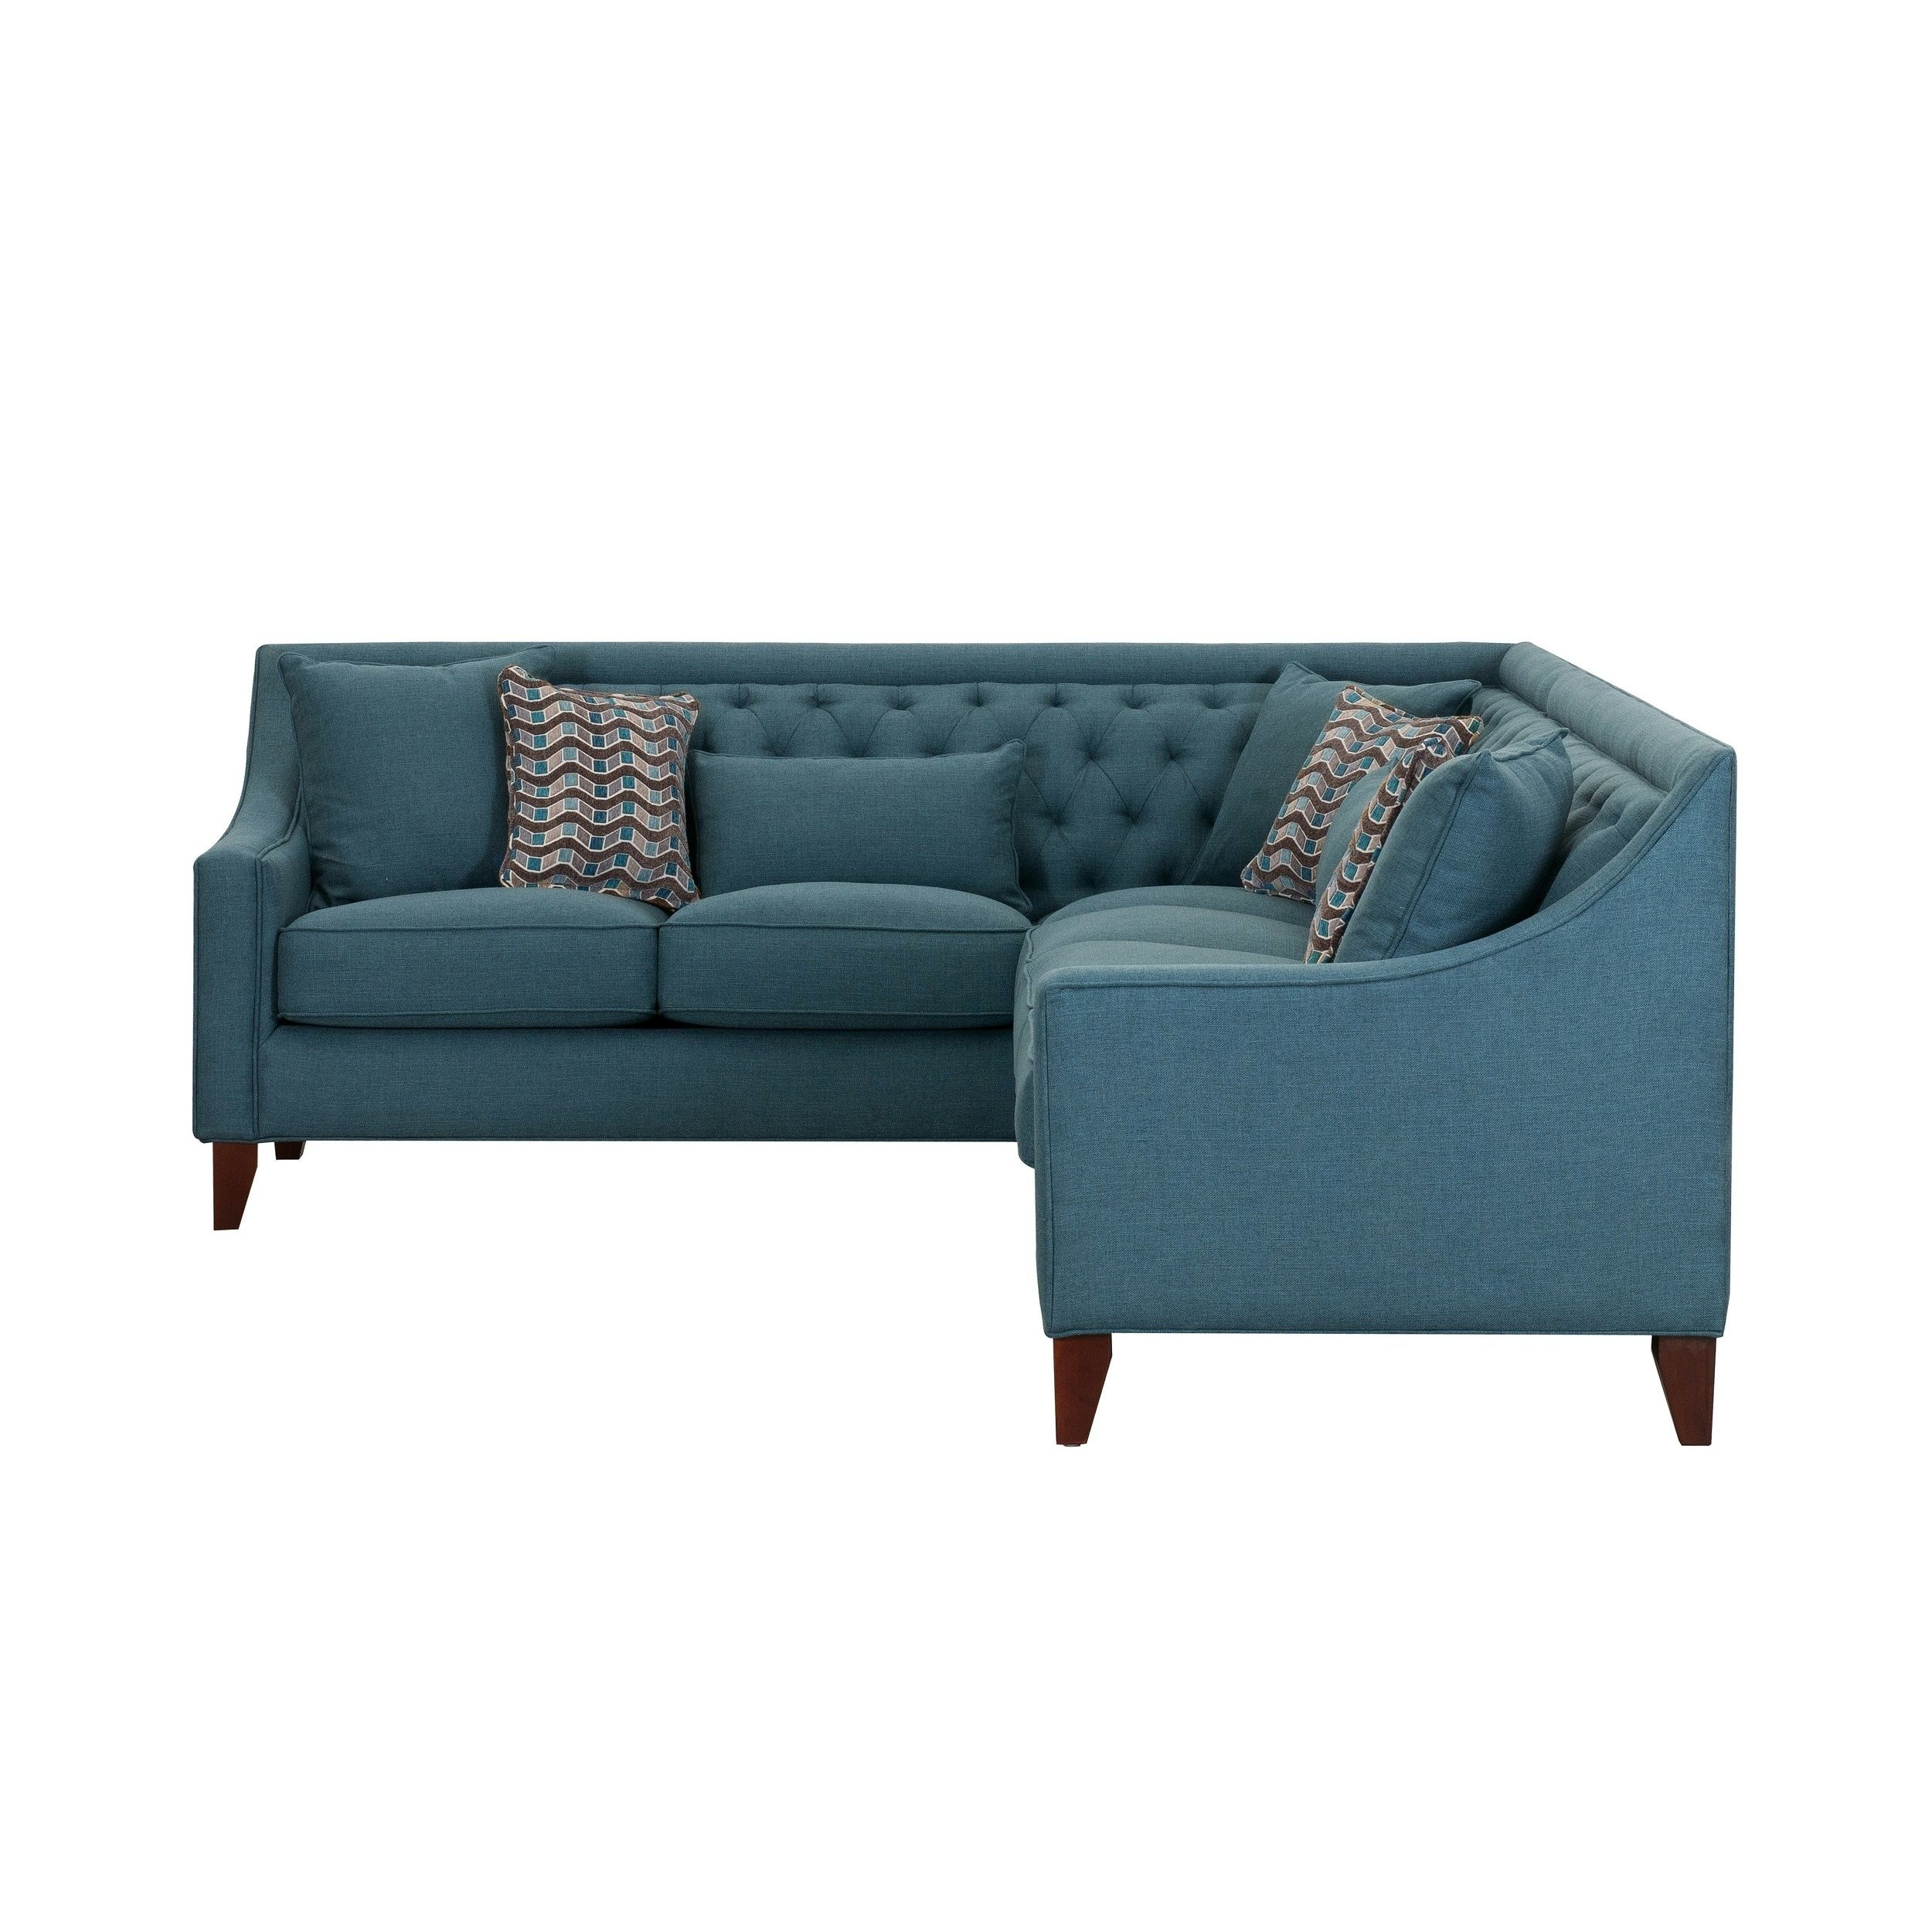 Chic Home Fulla Linen Tufted Back Rest Modern Contemporary Right Facing Sectional Sofa Teal Walmart Com Sectional Sofa Couch Sectional Sofa Teal Sofa